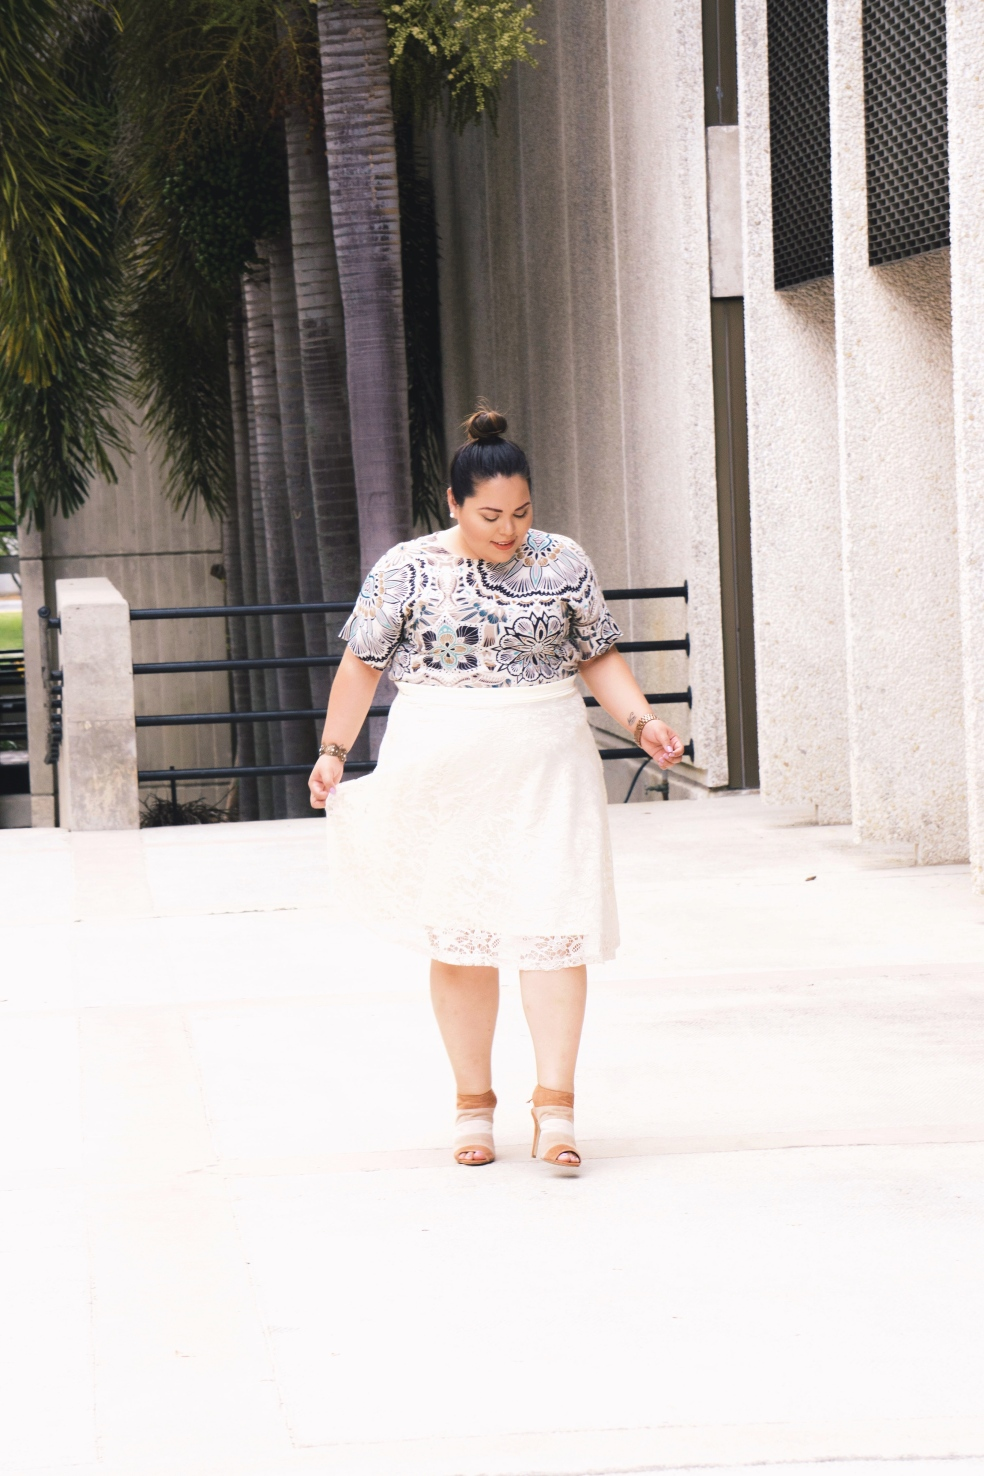 Plus Size Lifestyle Spring Outfit of the Day